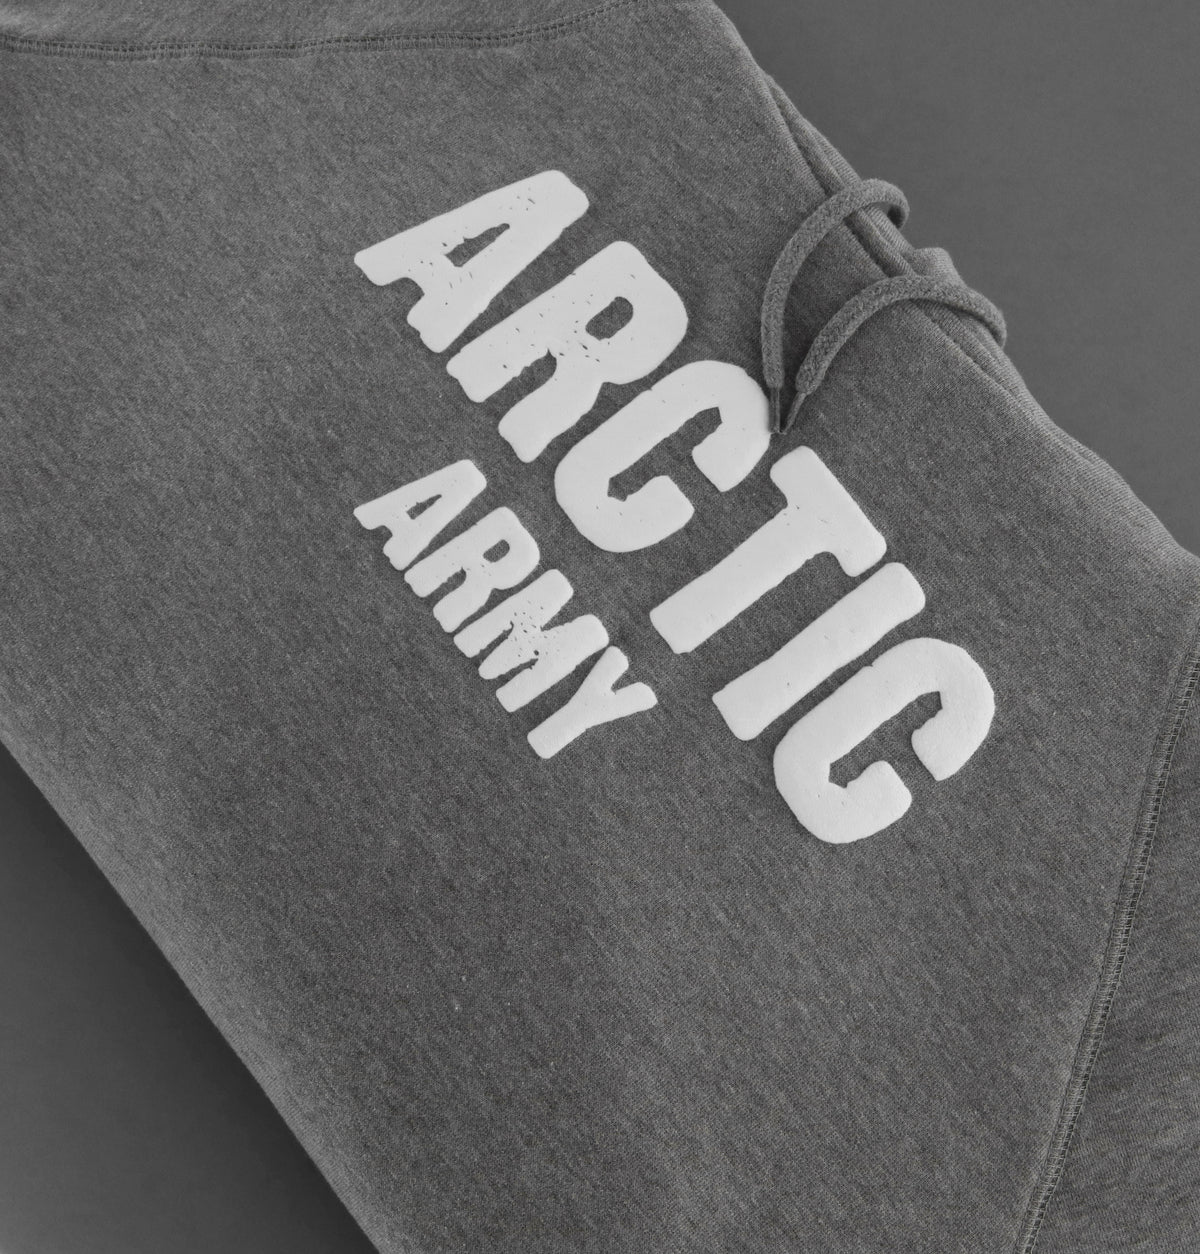 ARCTIC HOODIE - GREY / WHITE LADIES